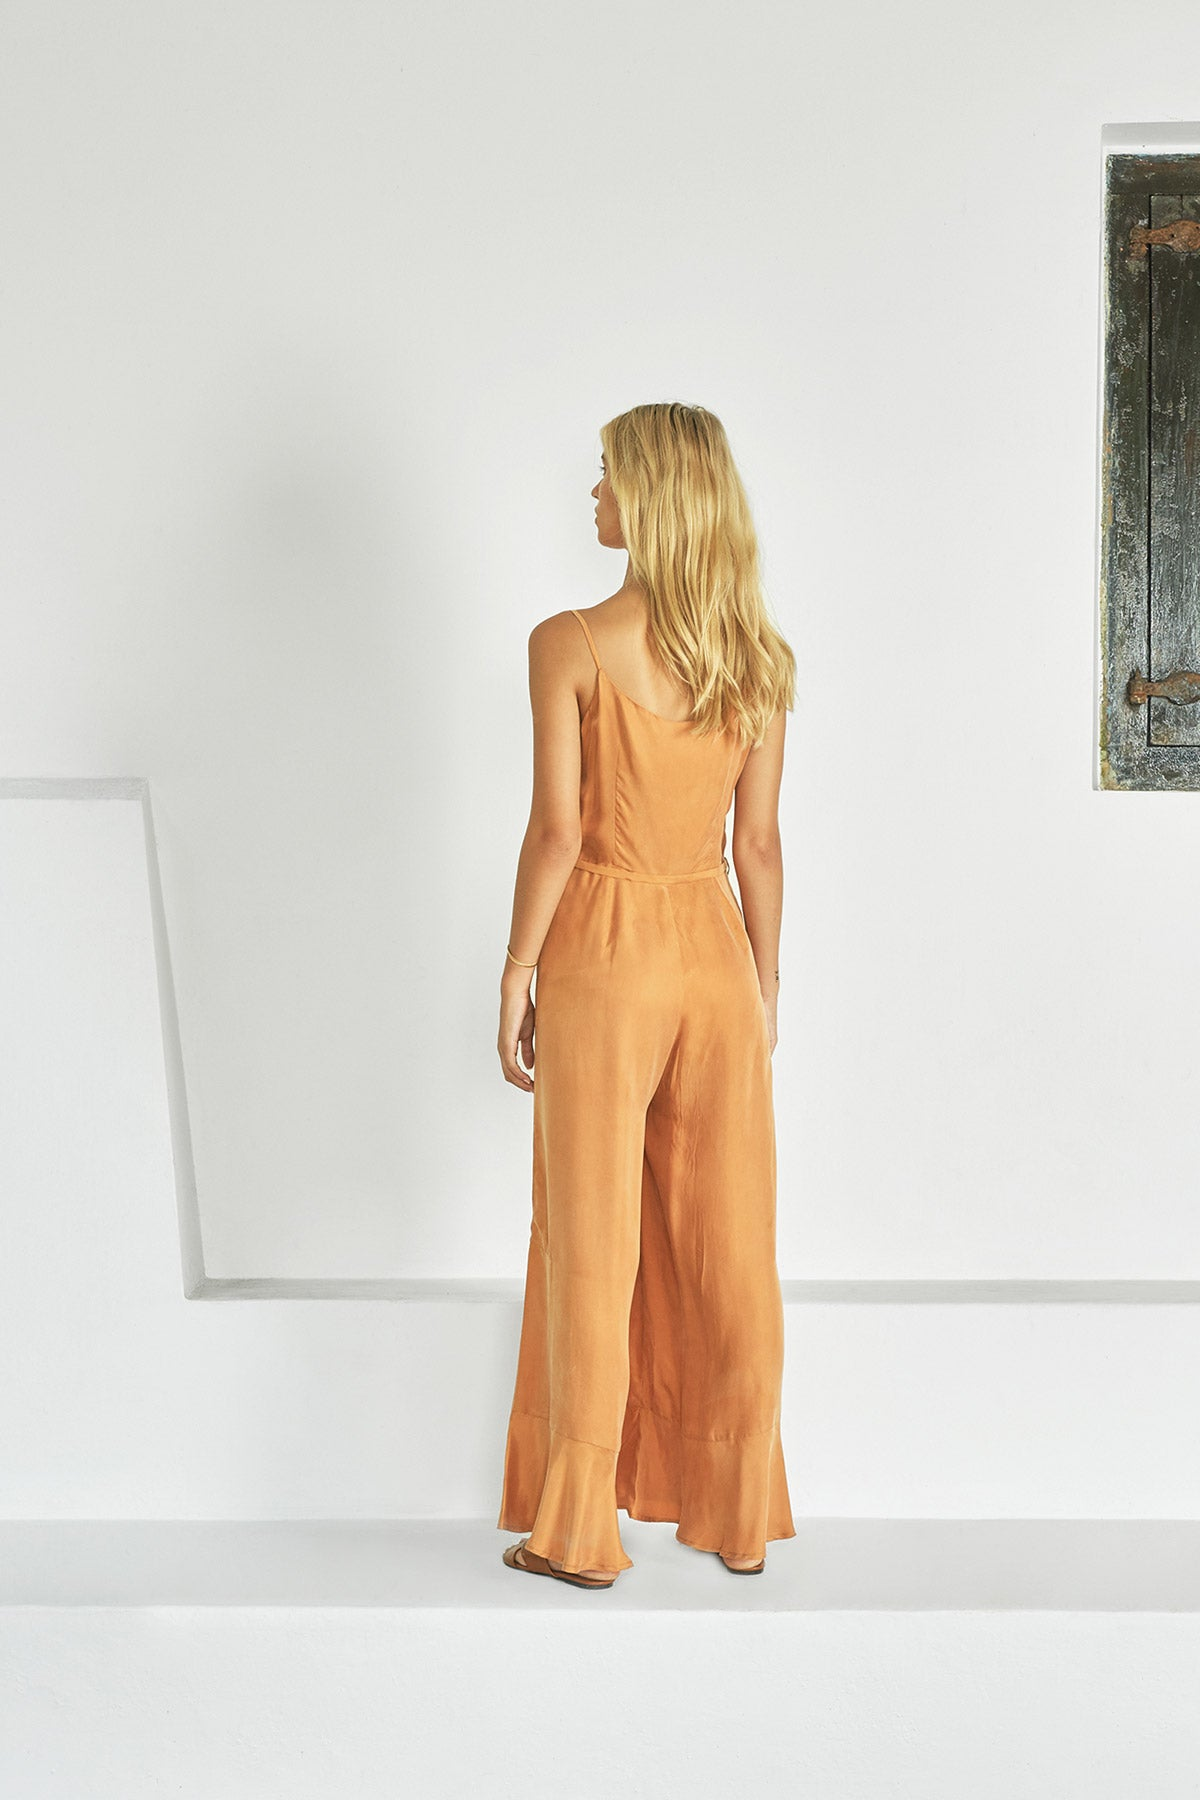 THE LIA JUMPSUIT